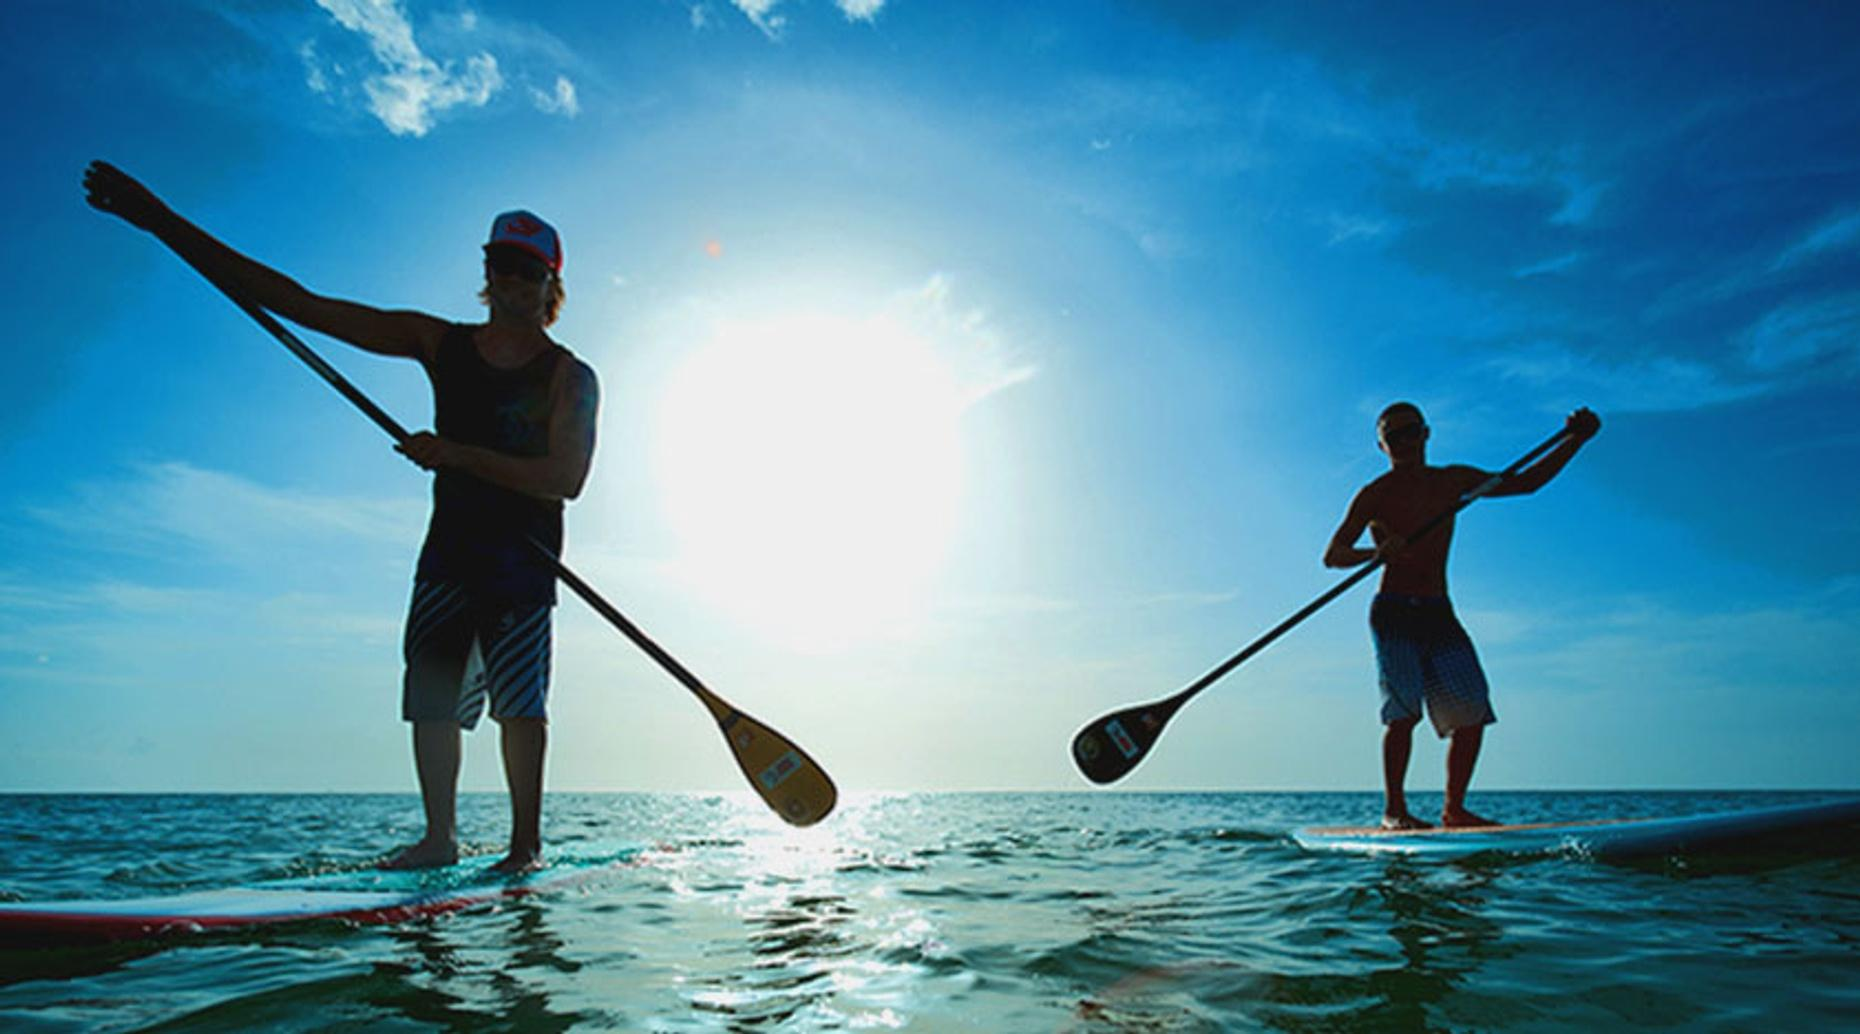 Hourly Stand-Up Paddleboard Rental in Cancun